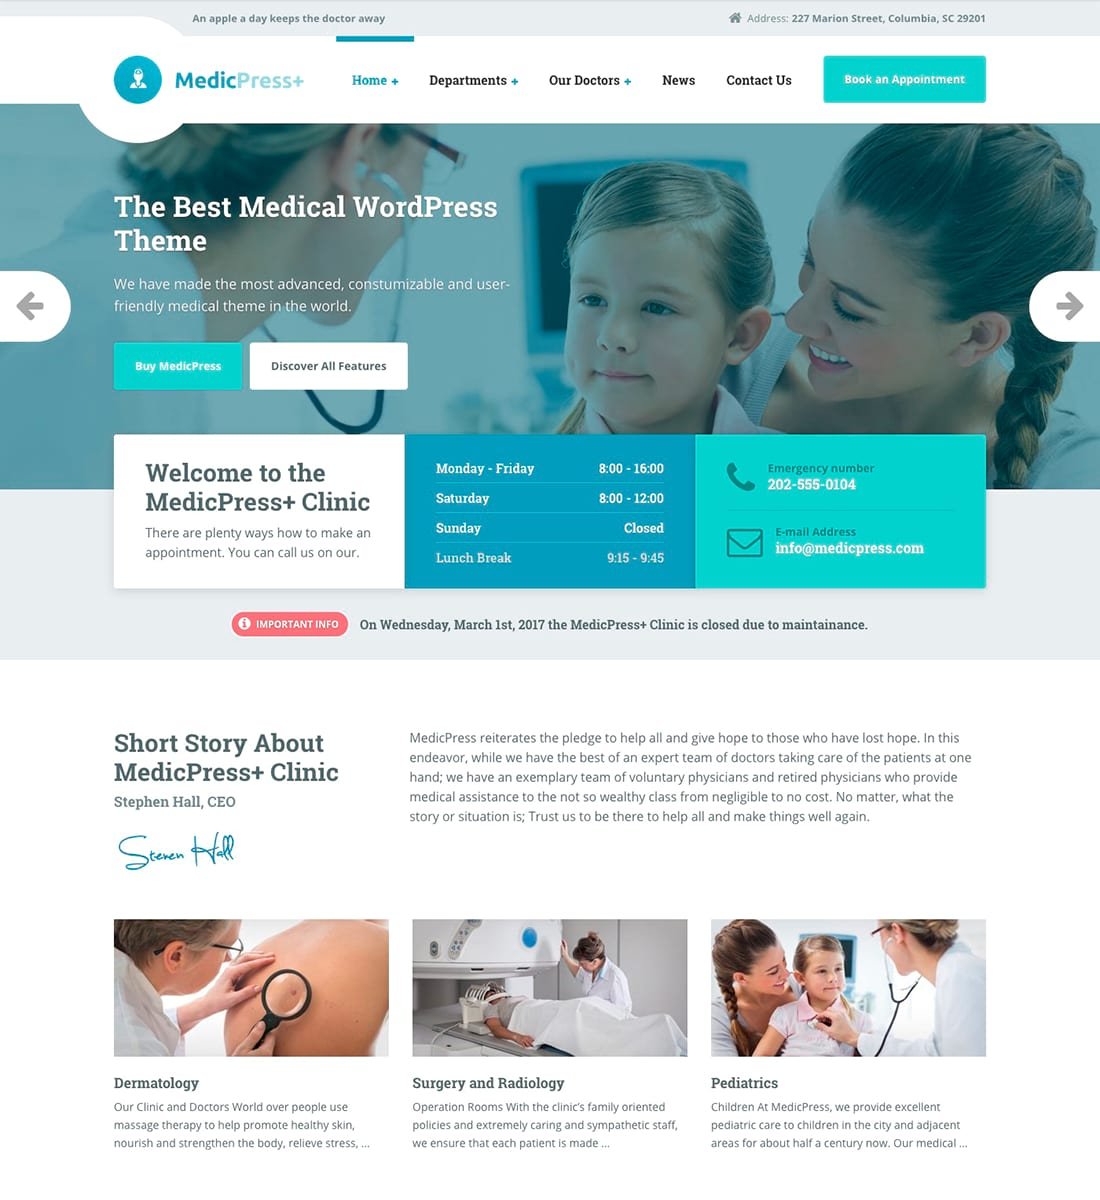 MedicPress - Medical WordPress Theme for Clinics and Private Doctors is one of the best medical WordPress themes